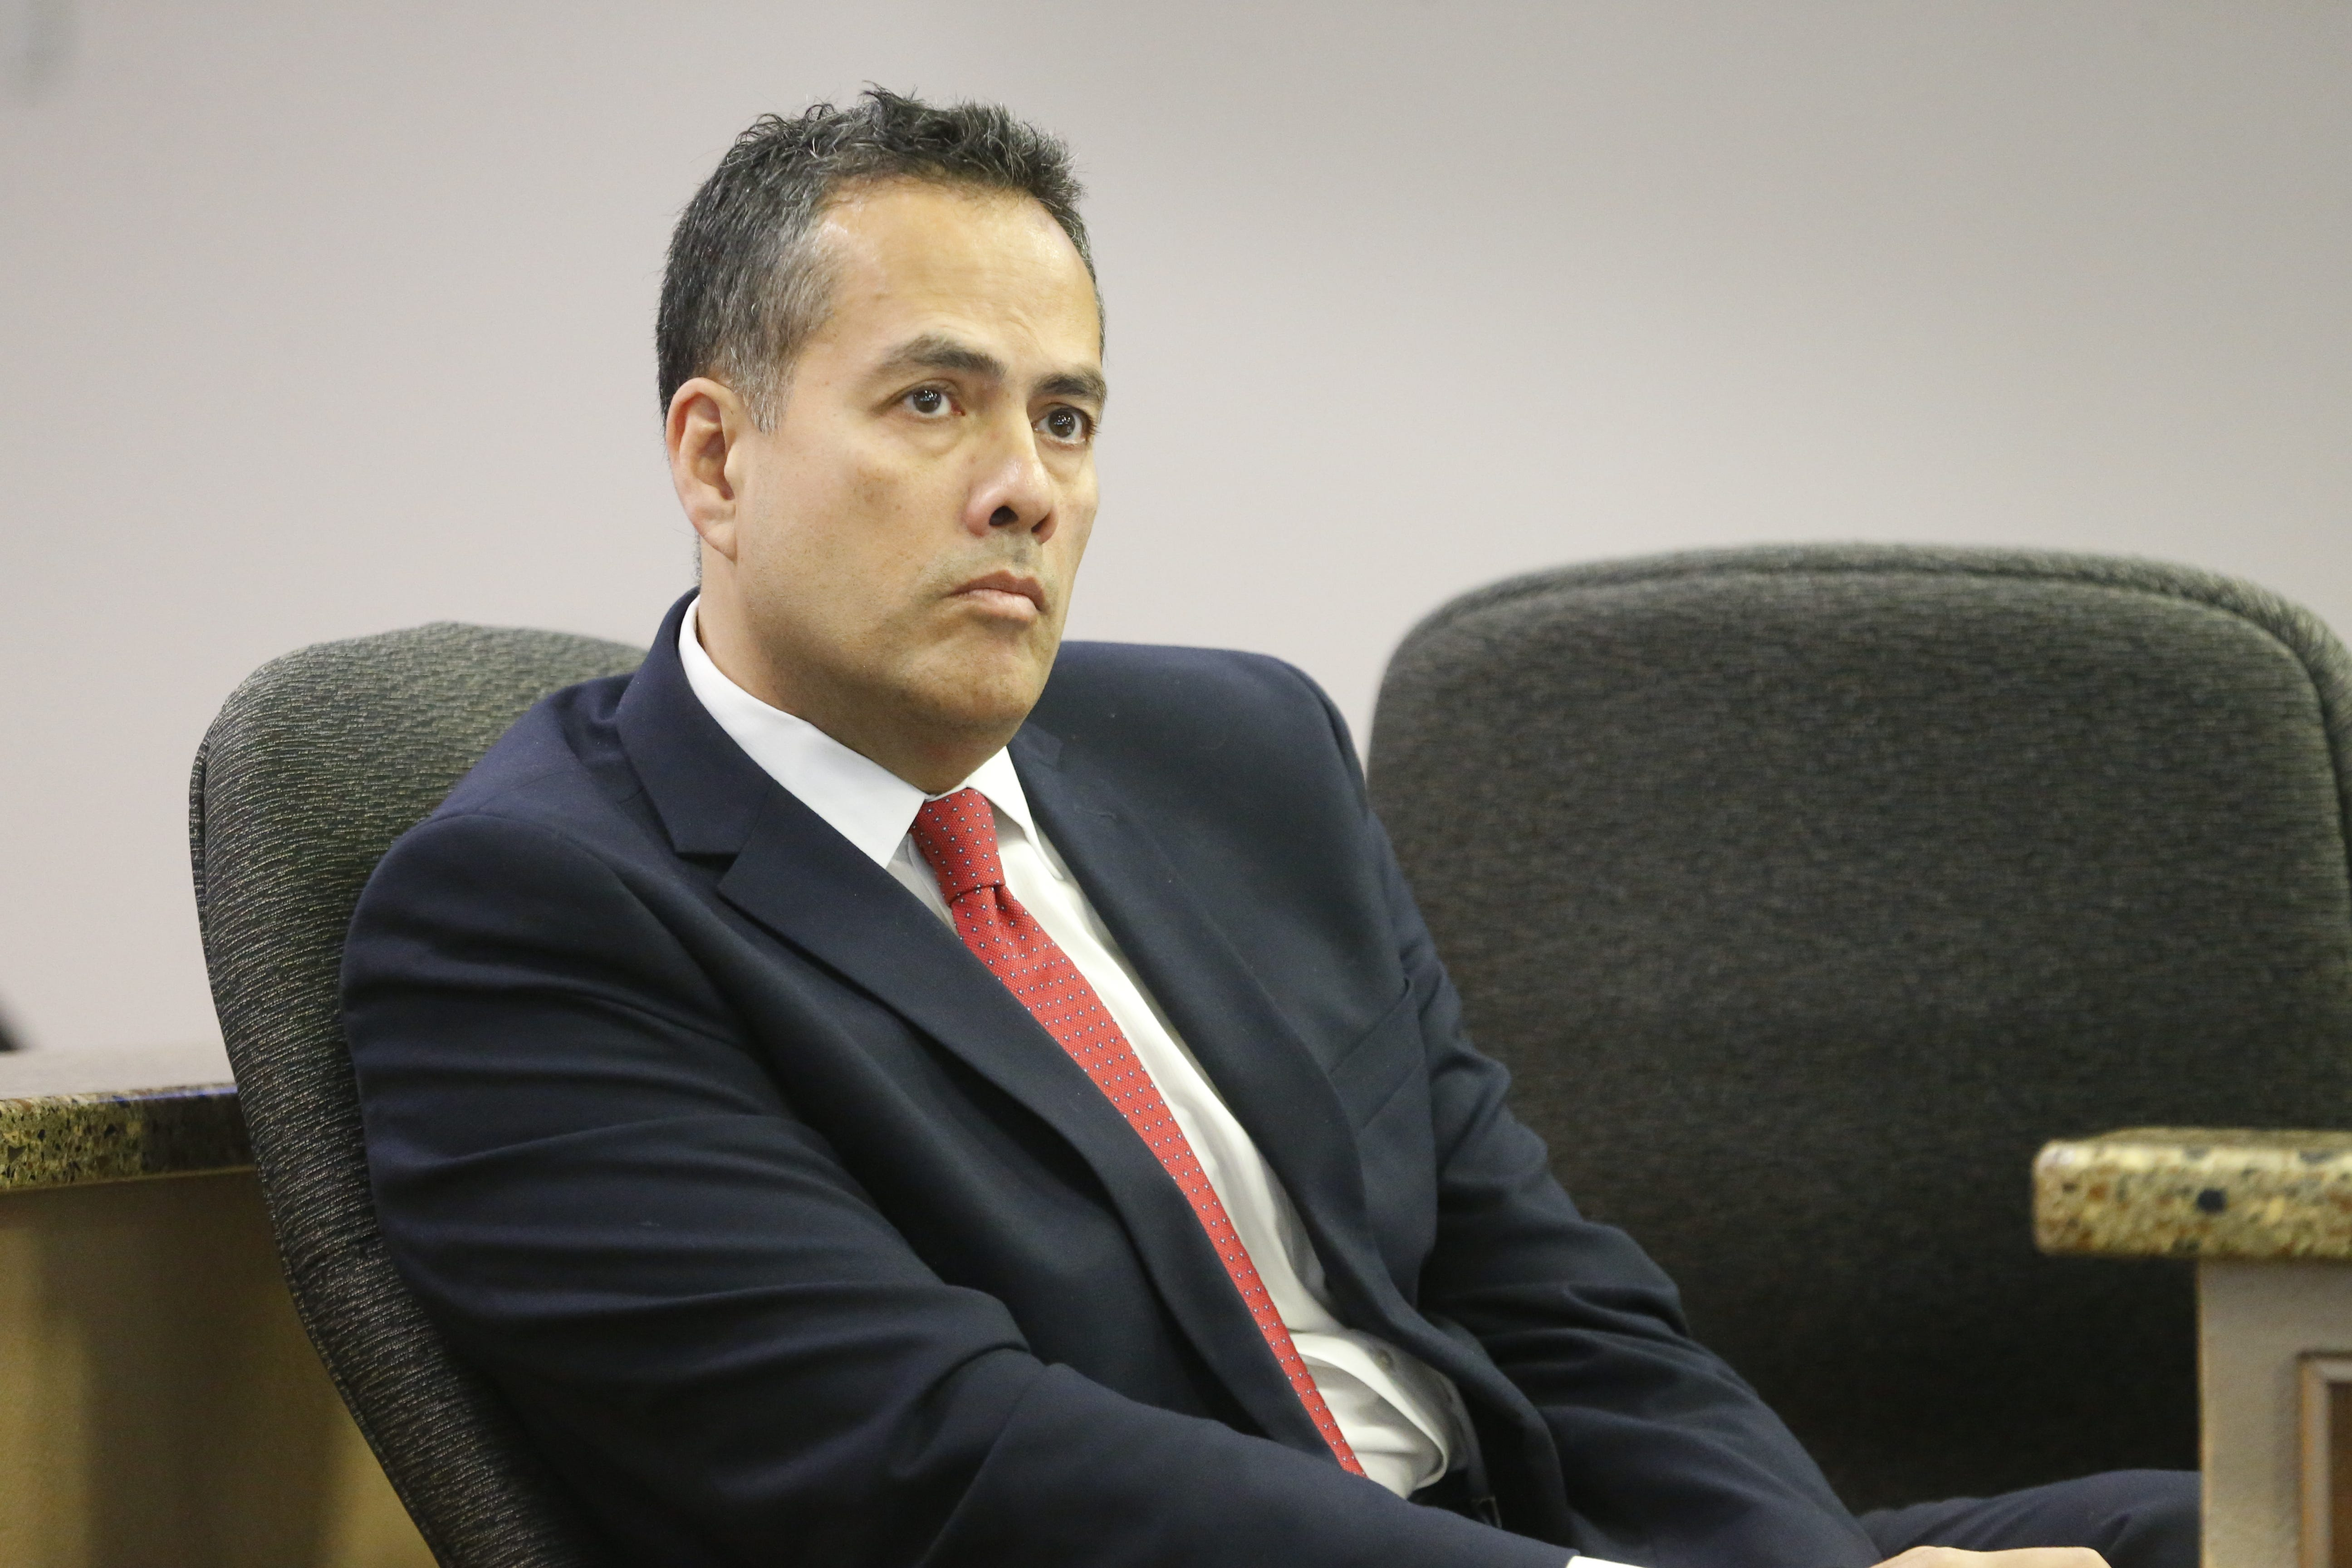 El Paso City Council approves employee contracts for city manager, city attorney | El Paso Times